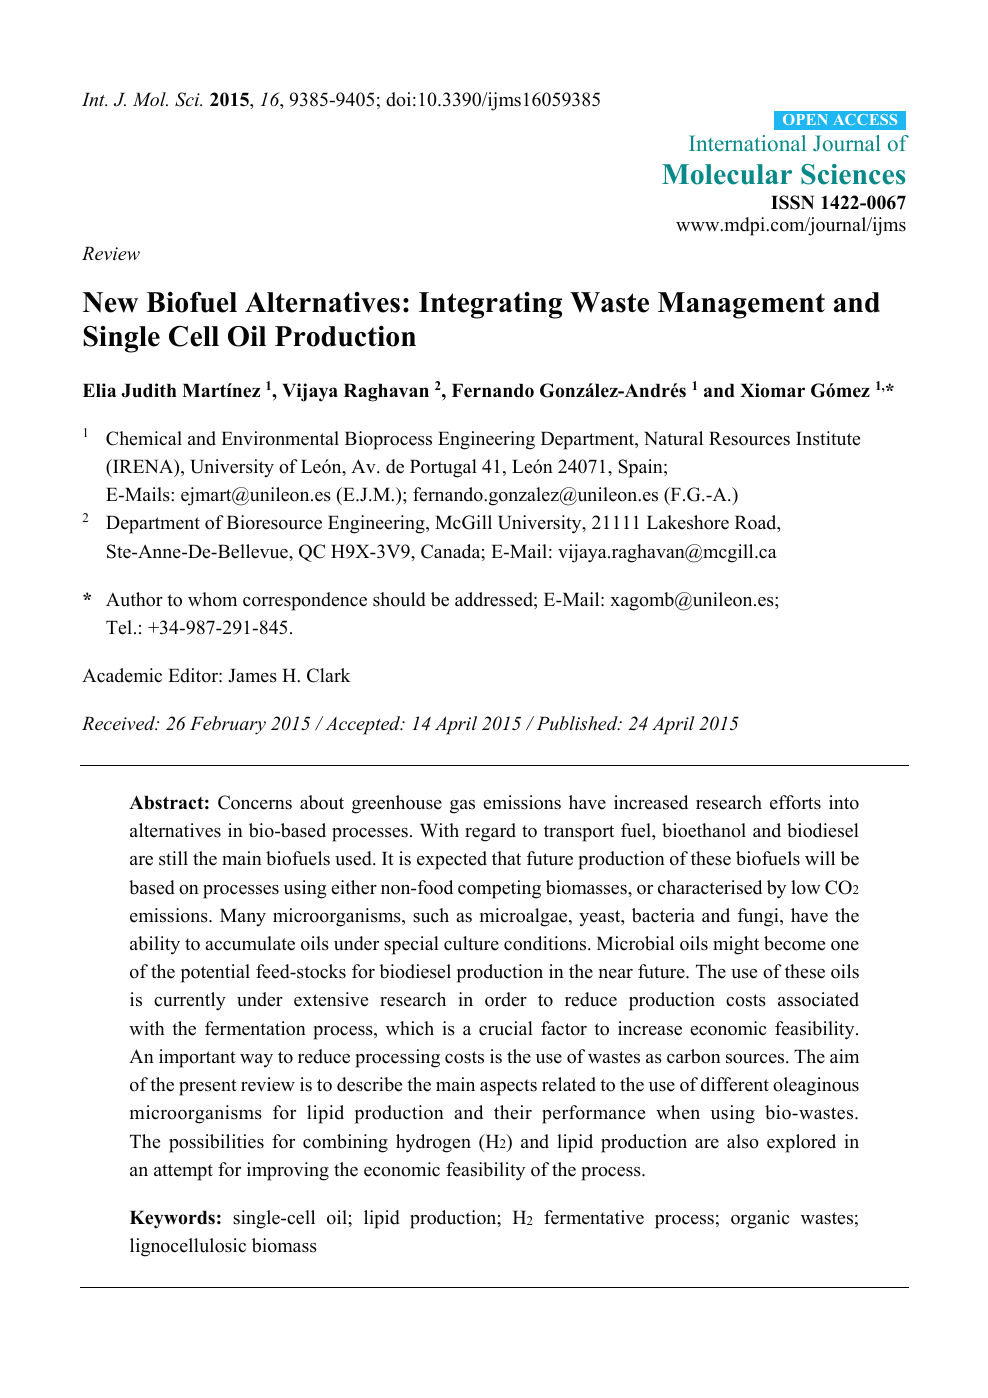 New Biofuel Alternatives: Integrating Waste Management and